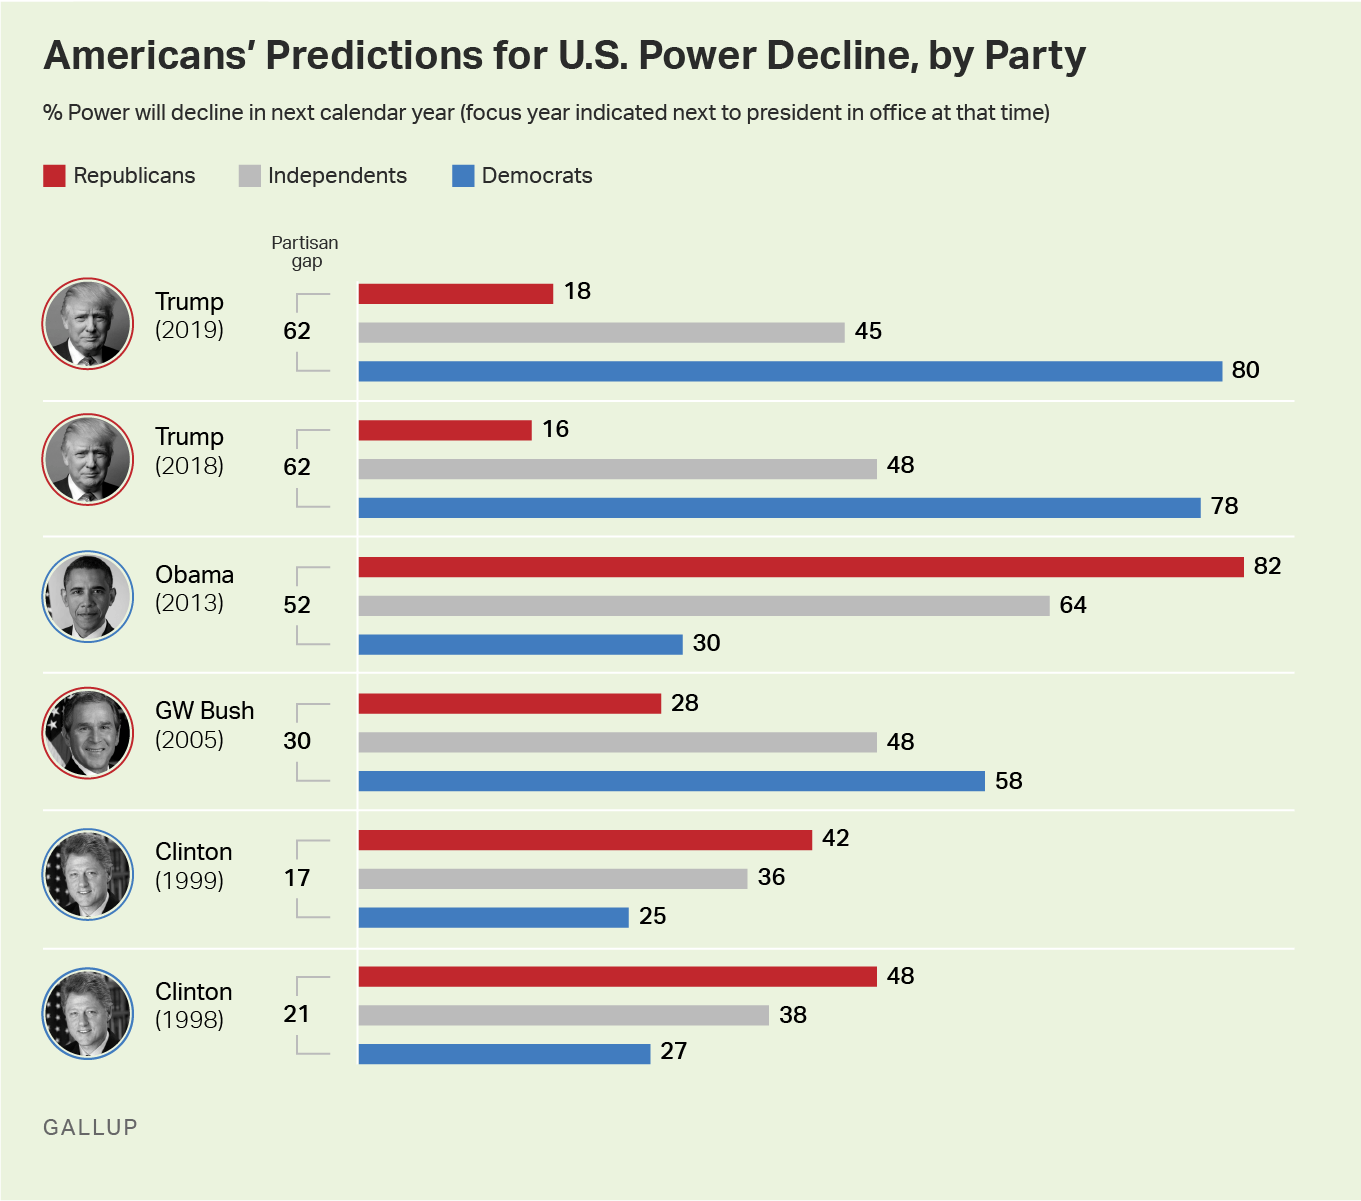 Bar graph. Americans' perceptions of what will happen to U.S. power in the next year, by key groups, from 1998 to 2018.